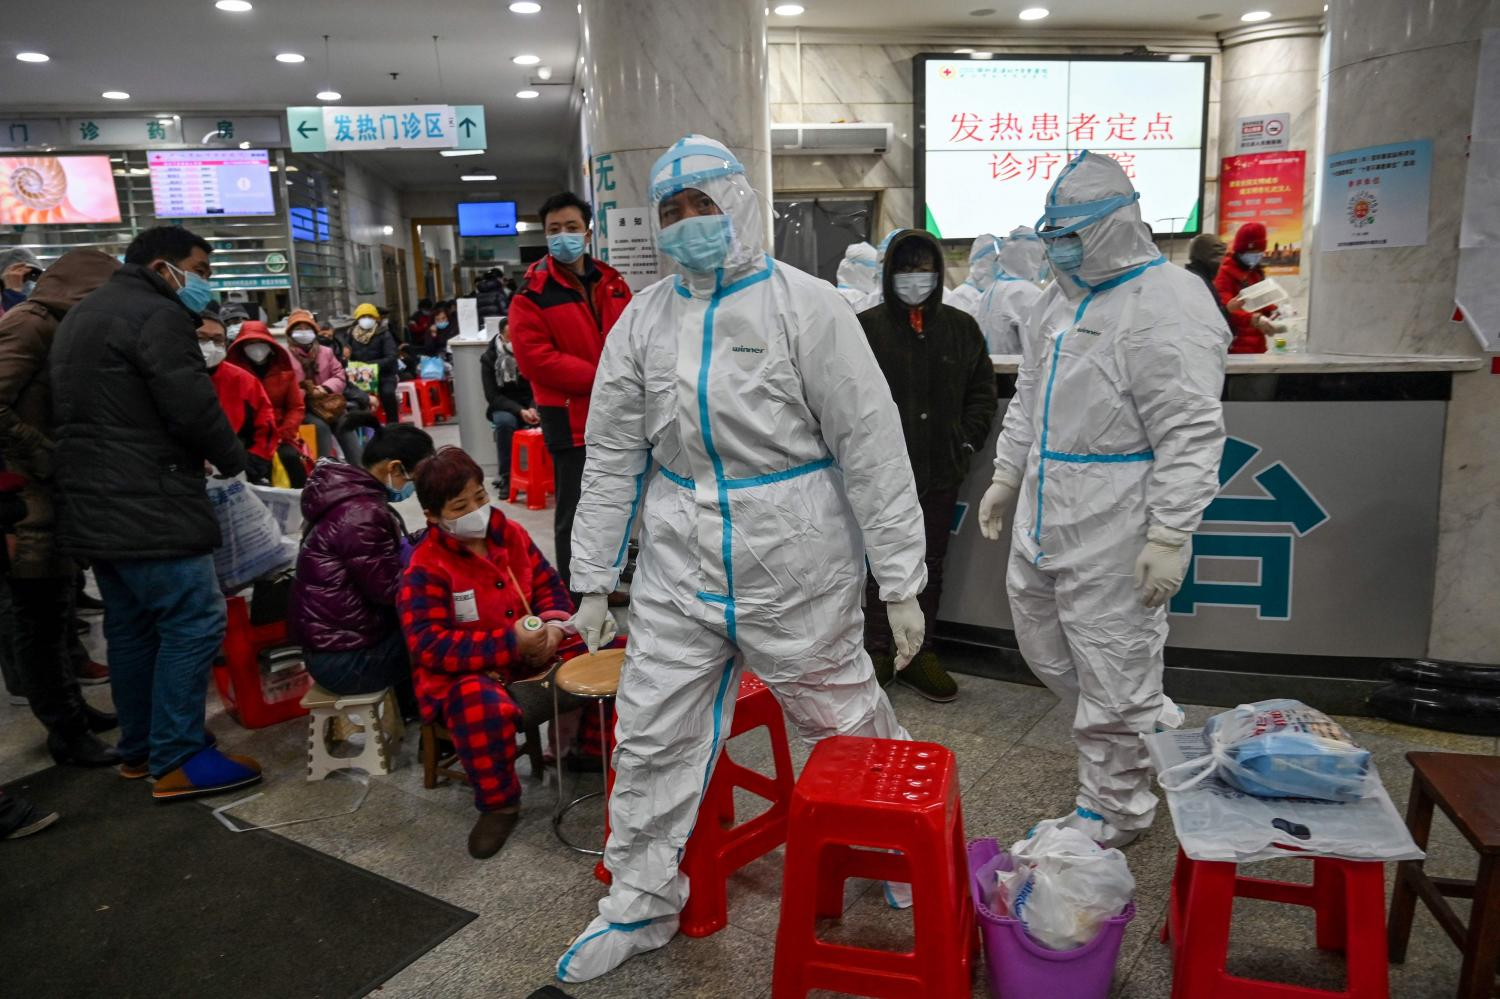 Medical staff members wearing protective clothing to help stop the spread of the deadly virus which began in Wuhan, walk next to patients waiting for medical attention at the Wuhan Red Cross Hospital.(AFP photo)